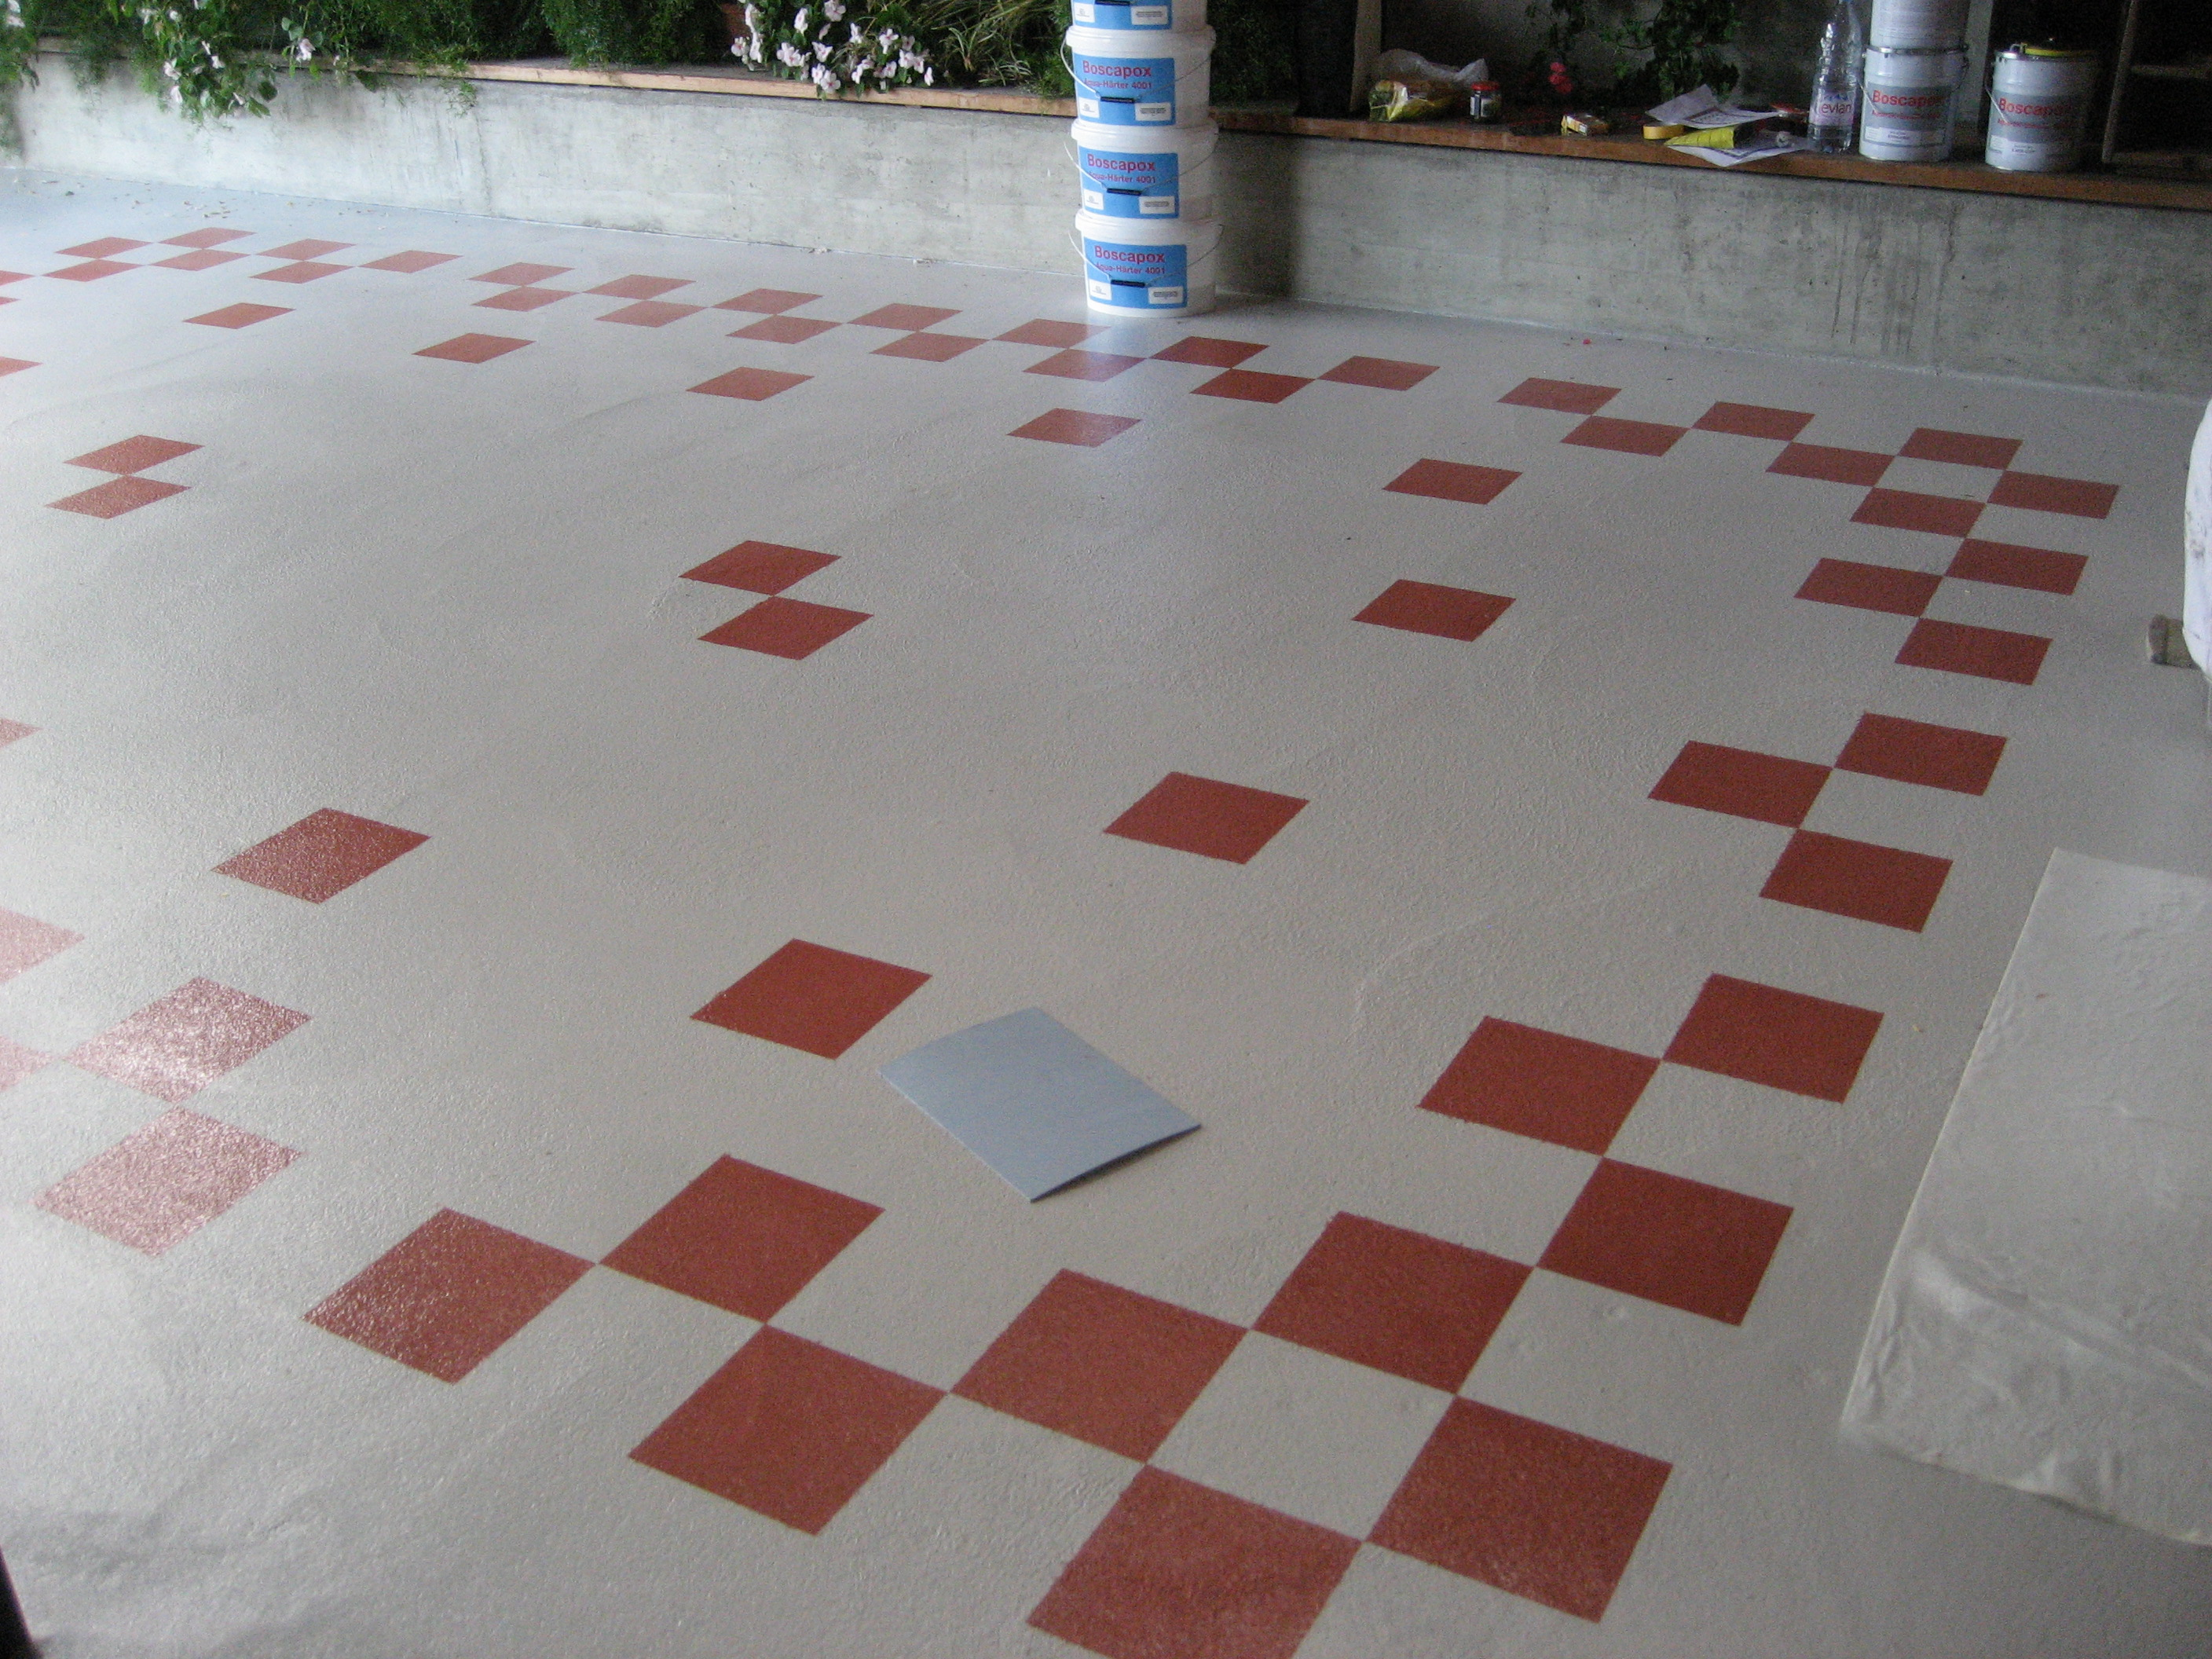 Arranging the tiles